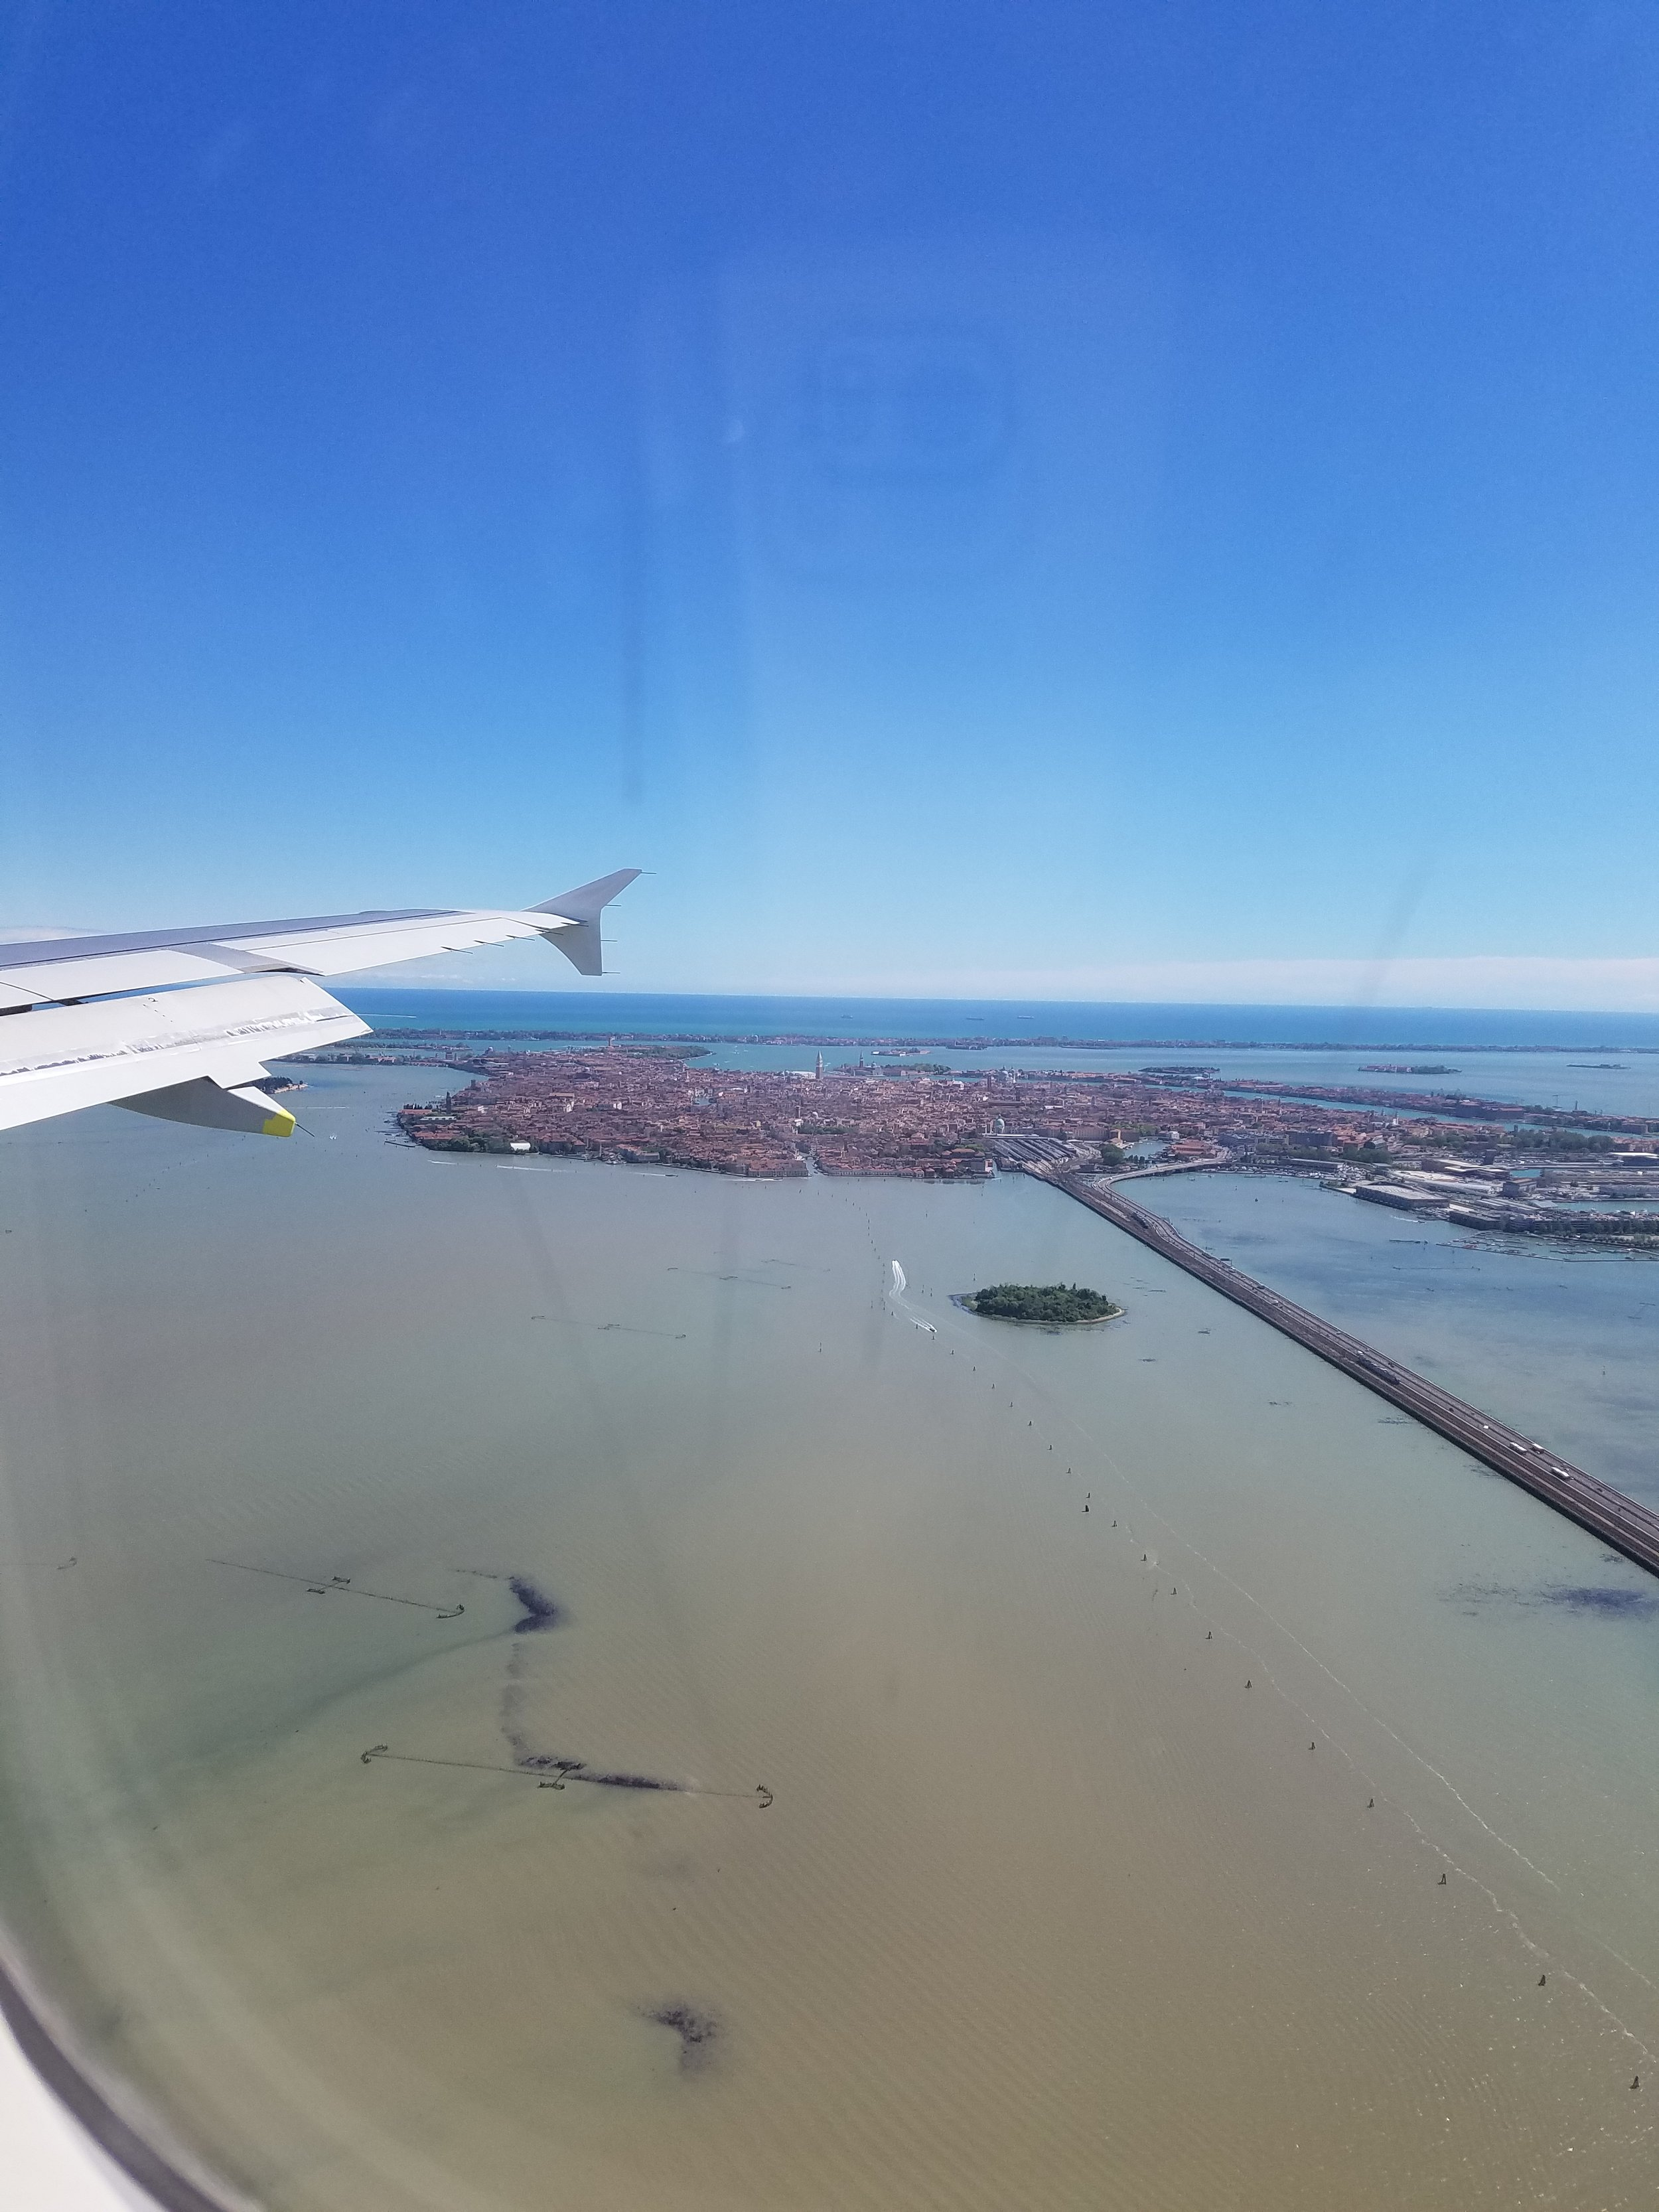 Landing at Marco Polo Airport in Venice.